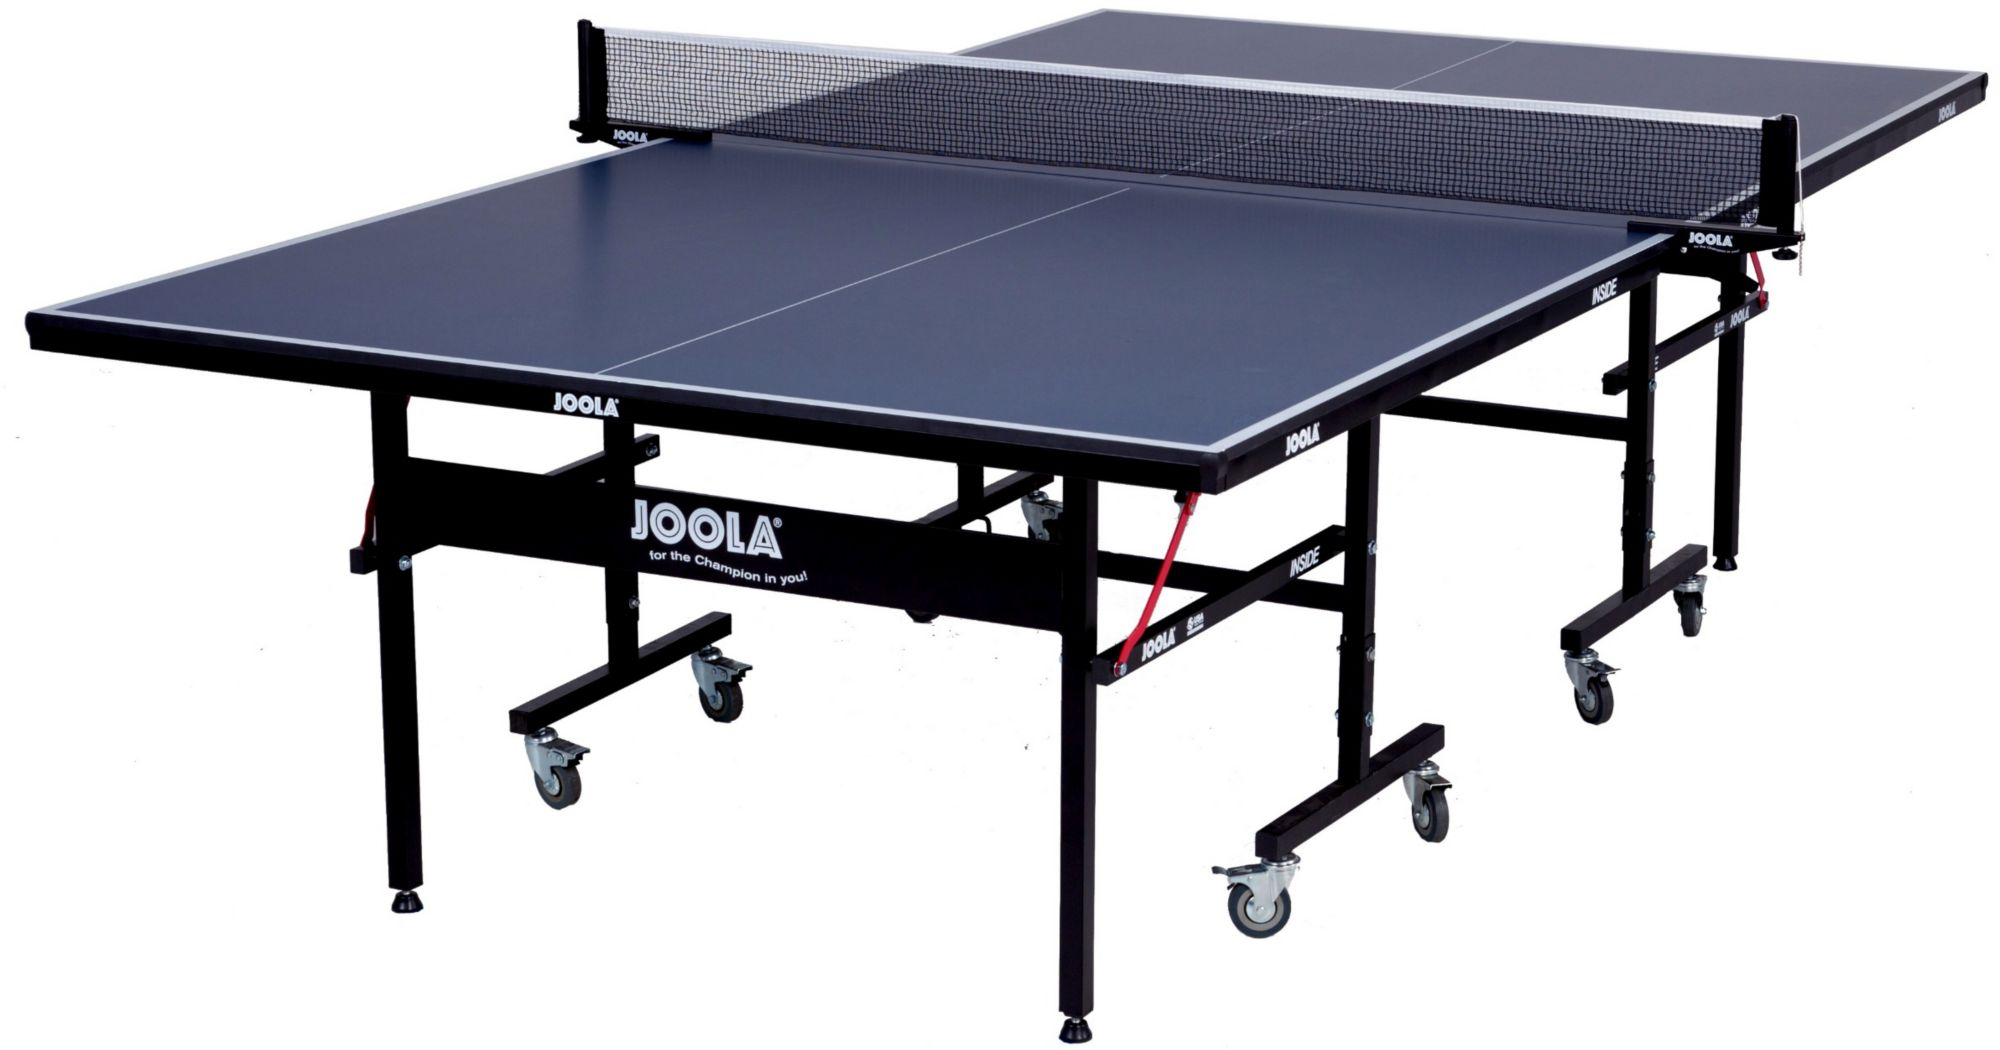 Joola Inside 15 Table Tennis Table With Net Set 15mm